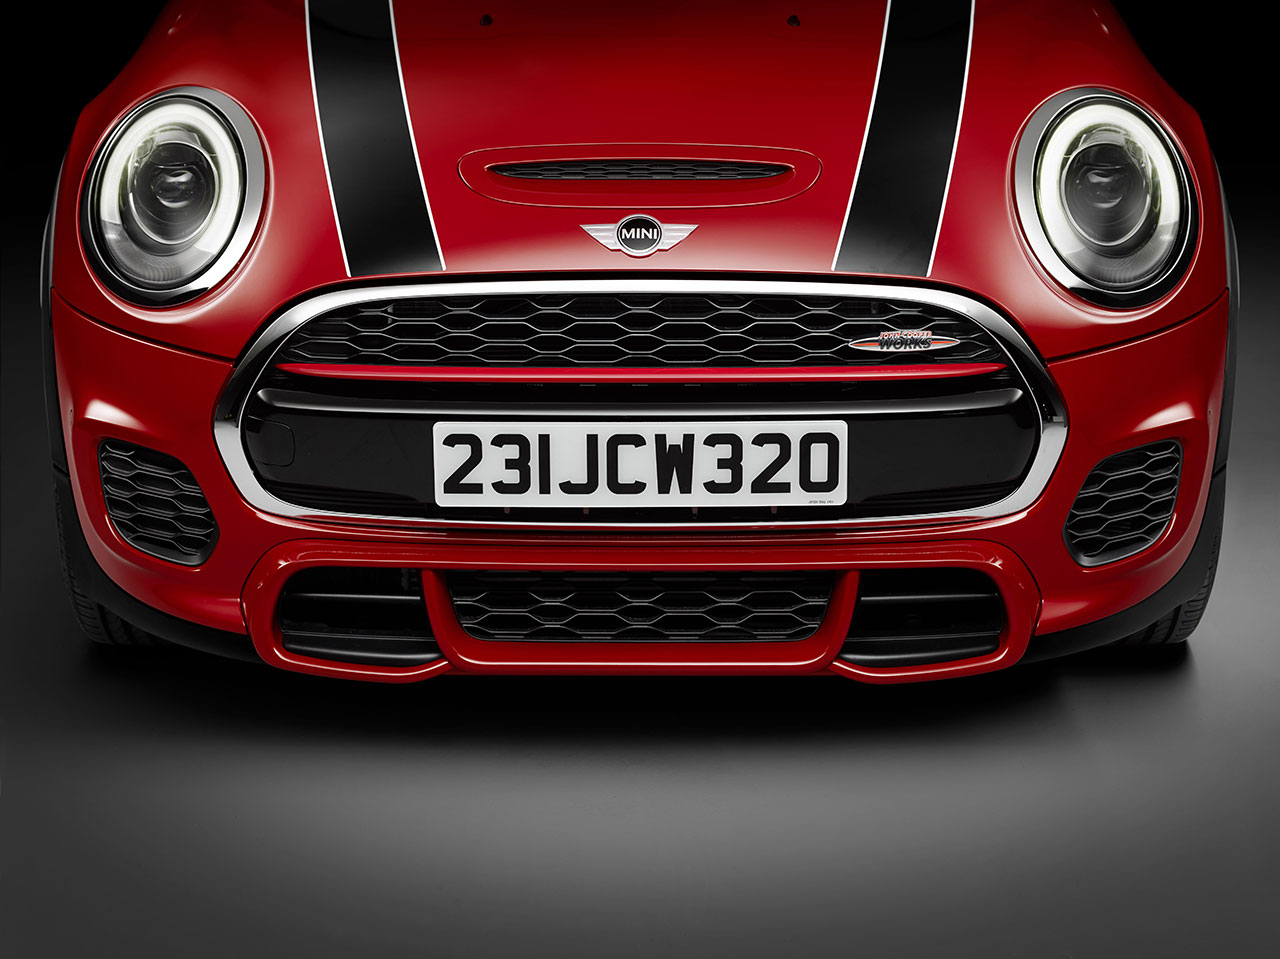 Mini John Cooper Works Hatch front